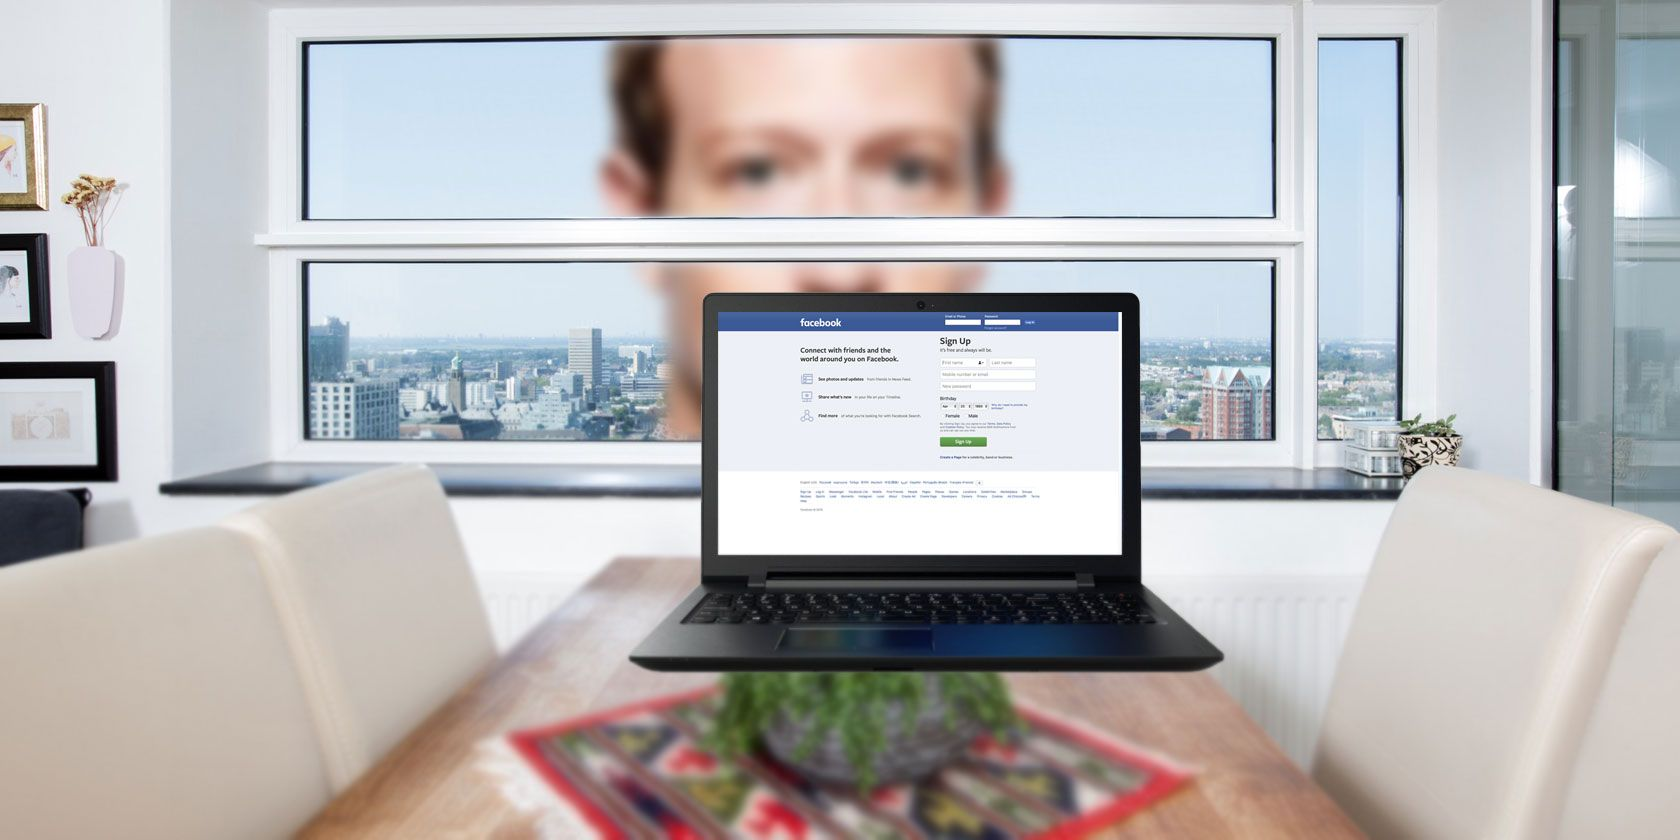 6 Apps to Find What Facebook Knows About You (And How to Block It)